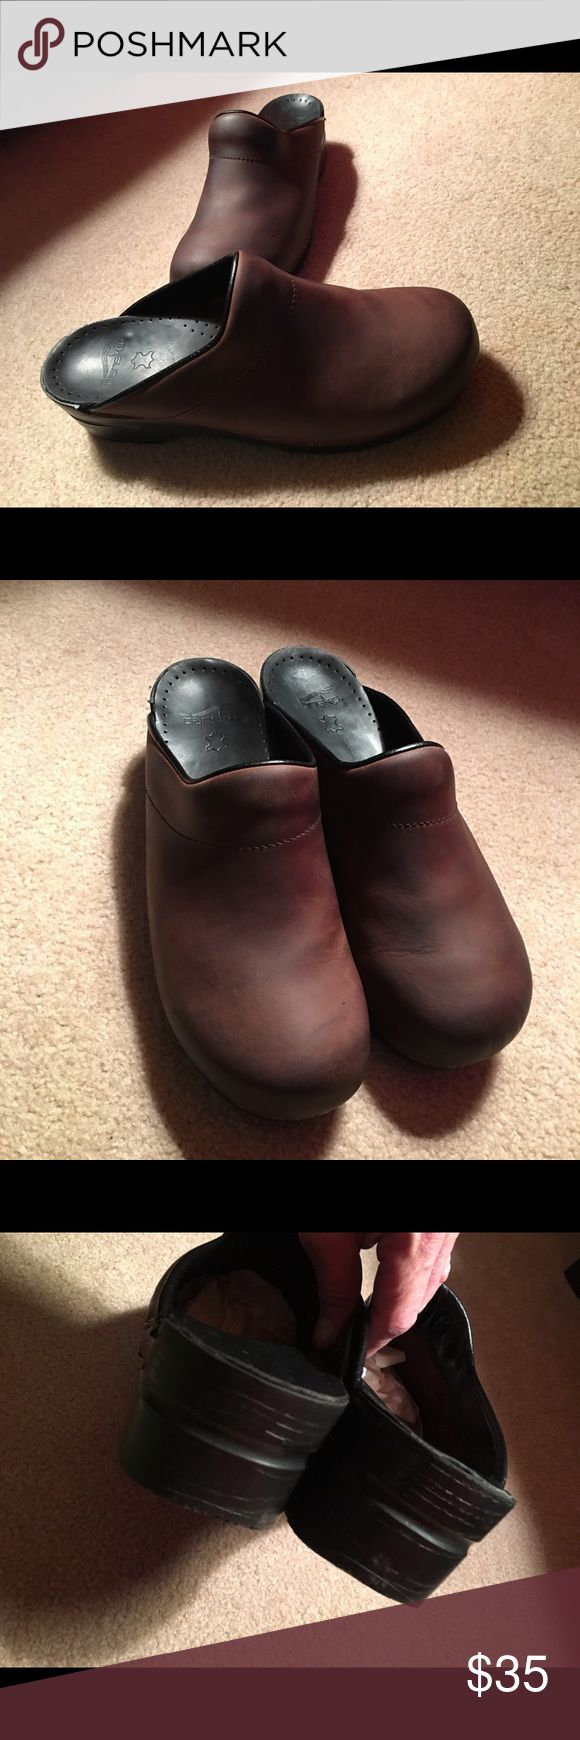 Dansko Brown Leather Clogs. Sz 45. Great Condition. Sz 45. Comfortable. Dansko Shoes Flats & Loafers